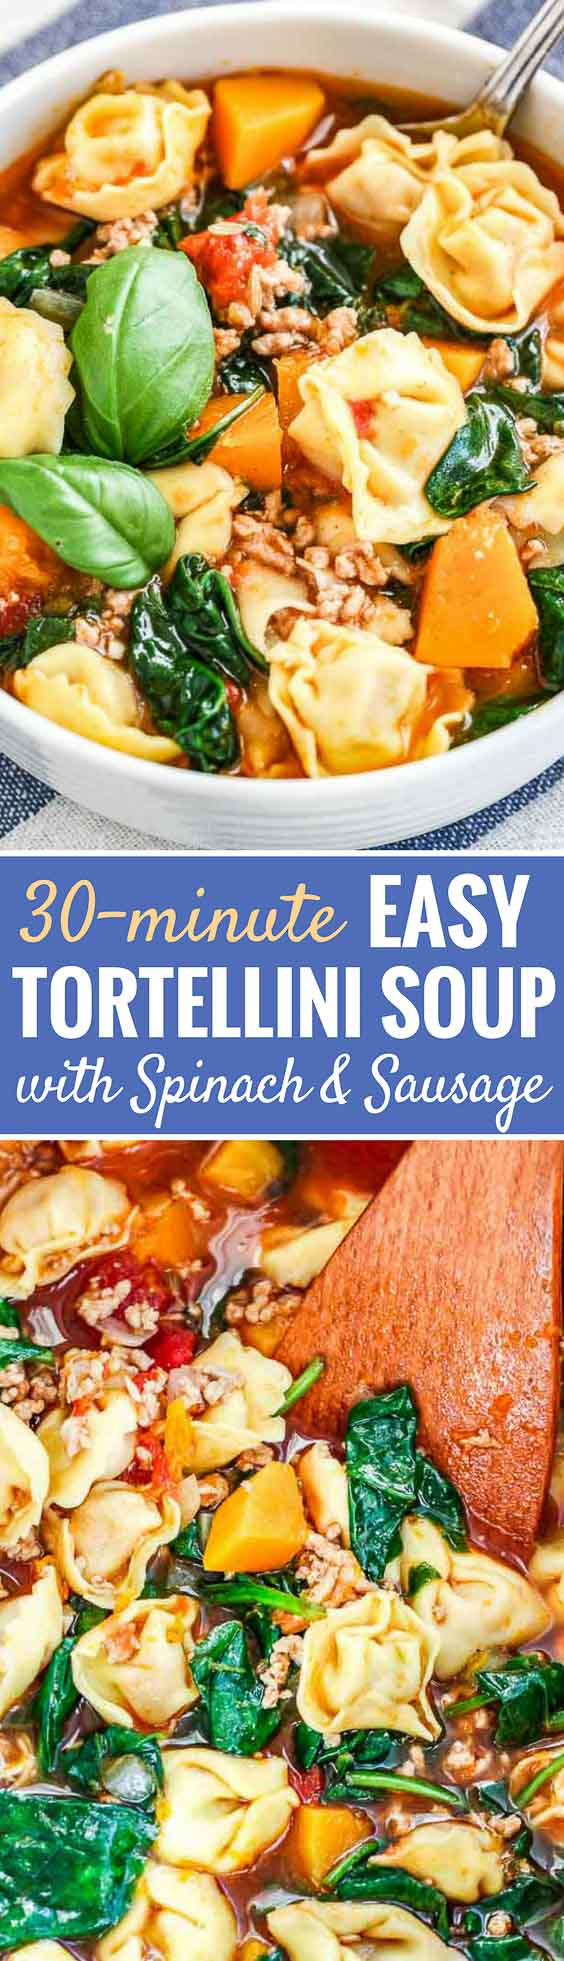 Spinach Tortellini Soup is so easy to make and filled with tortellini, fresh basil, Italian sausage, spinach, and butternut squash. A simple and satisfying comfort food recipe that is ready in half an hour and perfect for cold evenings! #tortellinisoup #souprecipes #comfortfood #soup